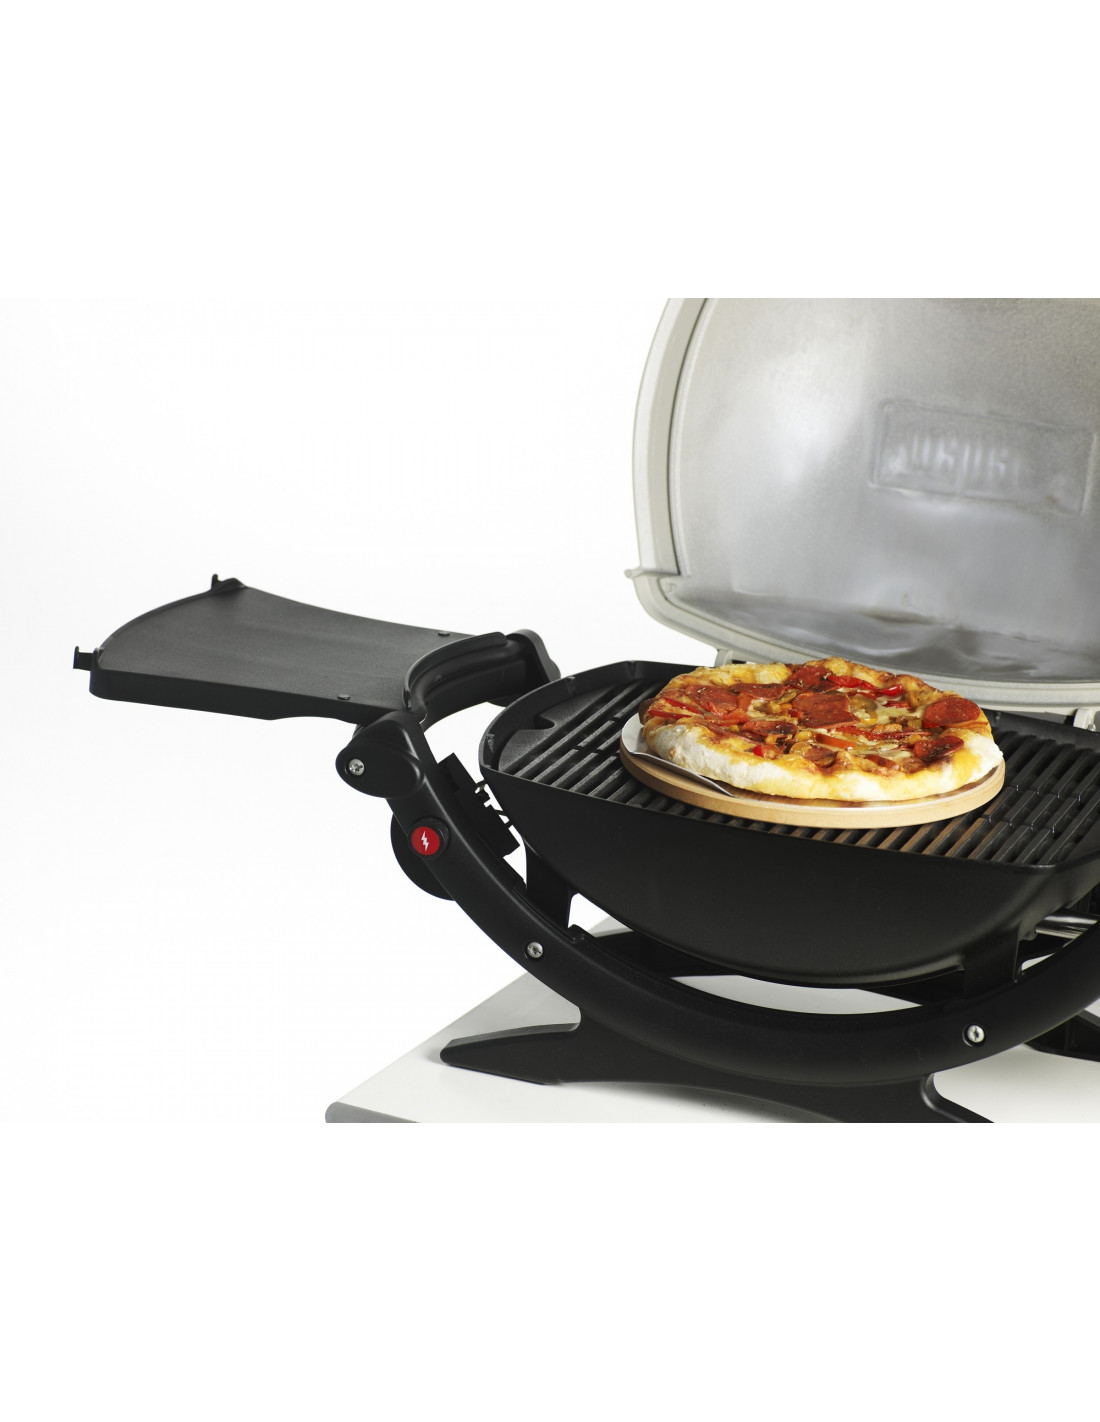 accessoire barbecue pierre pizza weber pour barbecue q. Black Bedroom Furniture Sets. Home Design Ideas